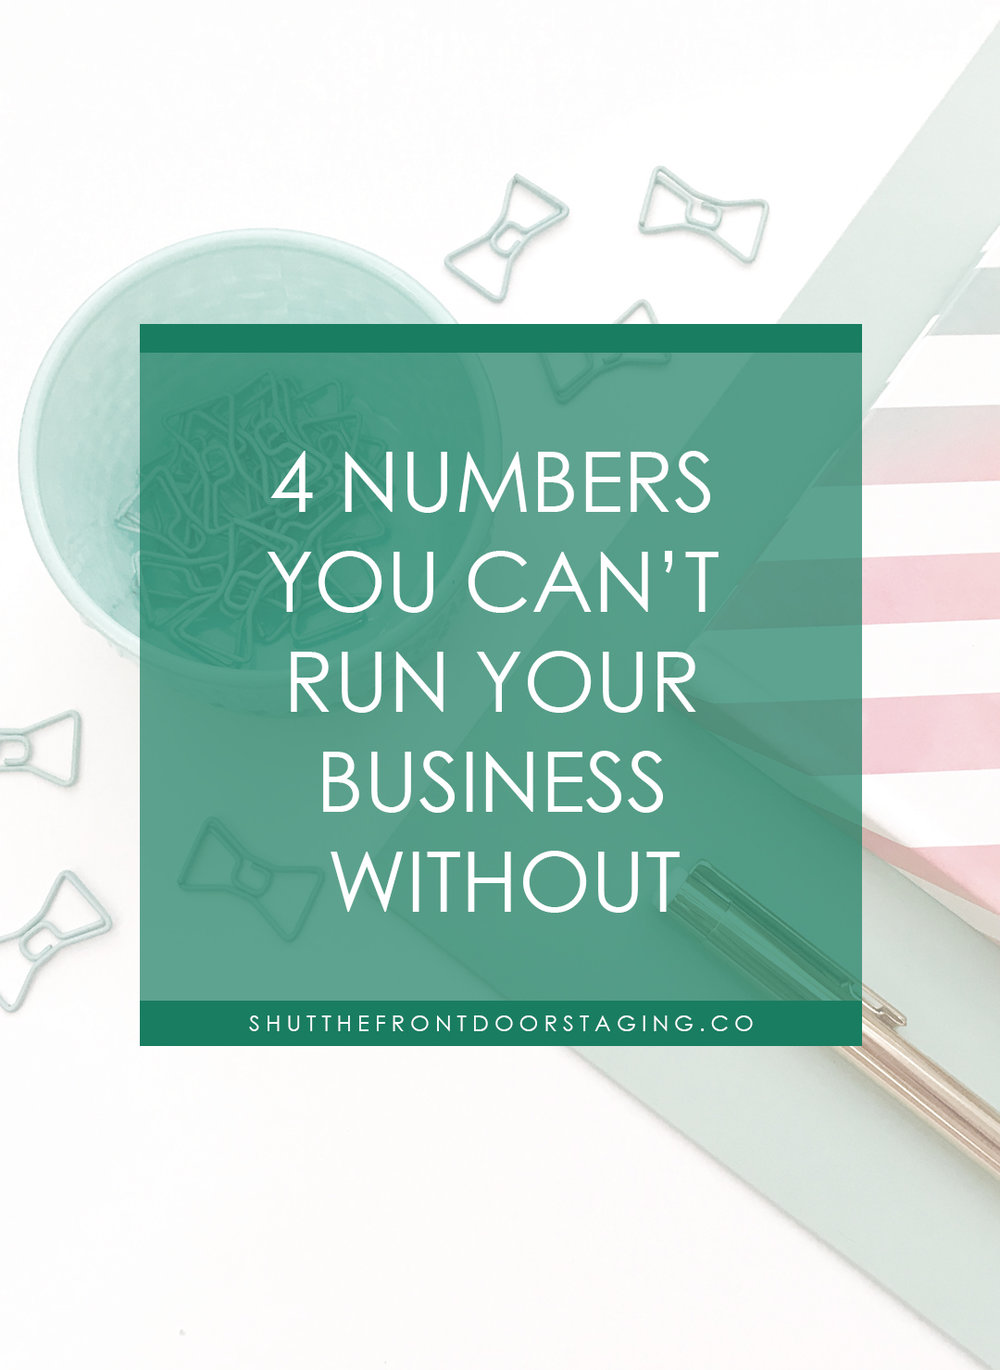 4 numbers cant run business without.jpg